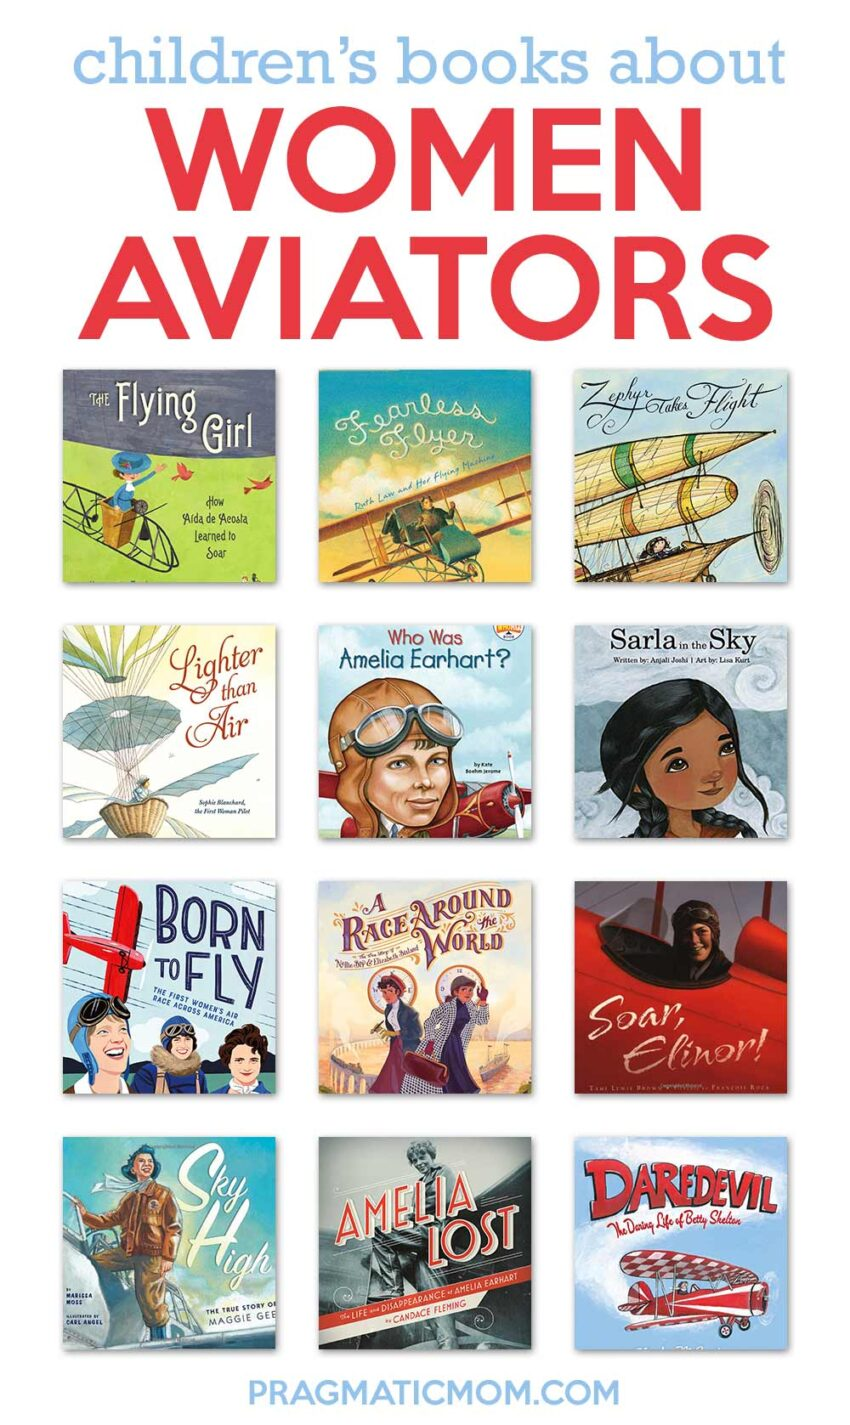 Children's Books about Women Aviators